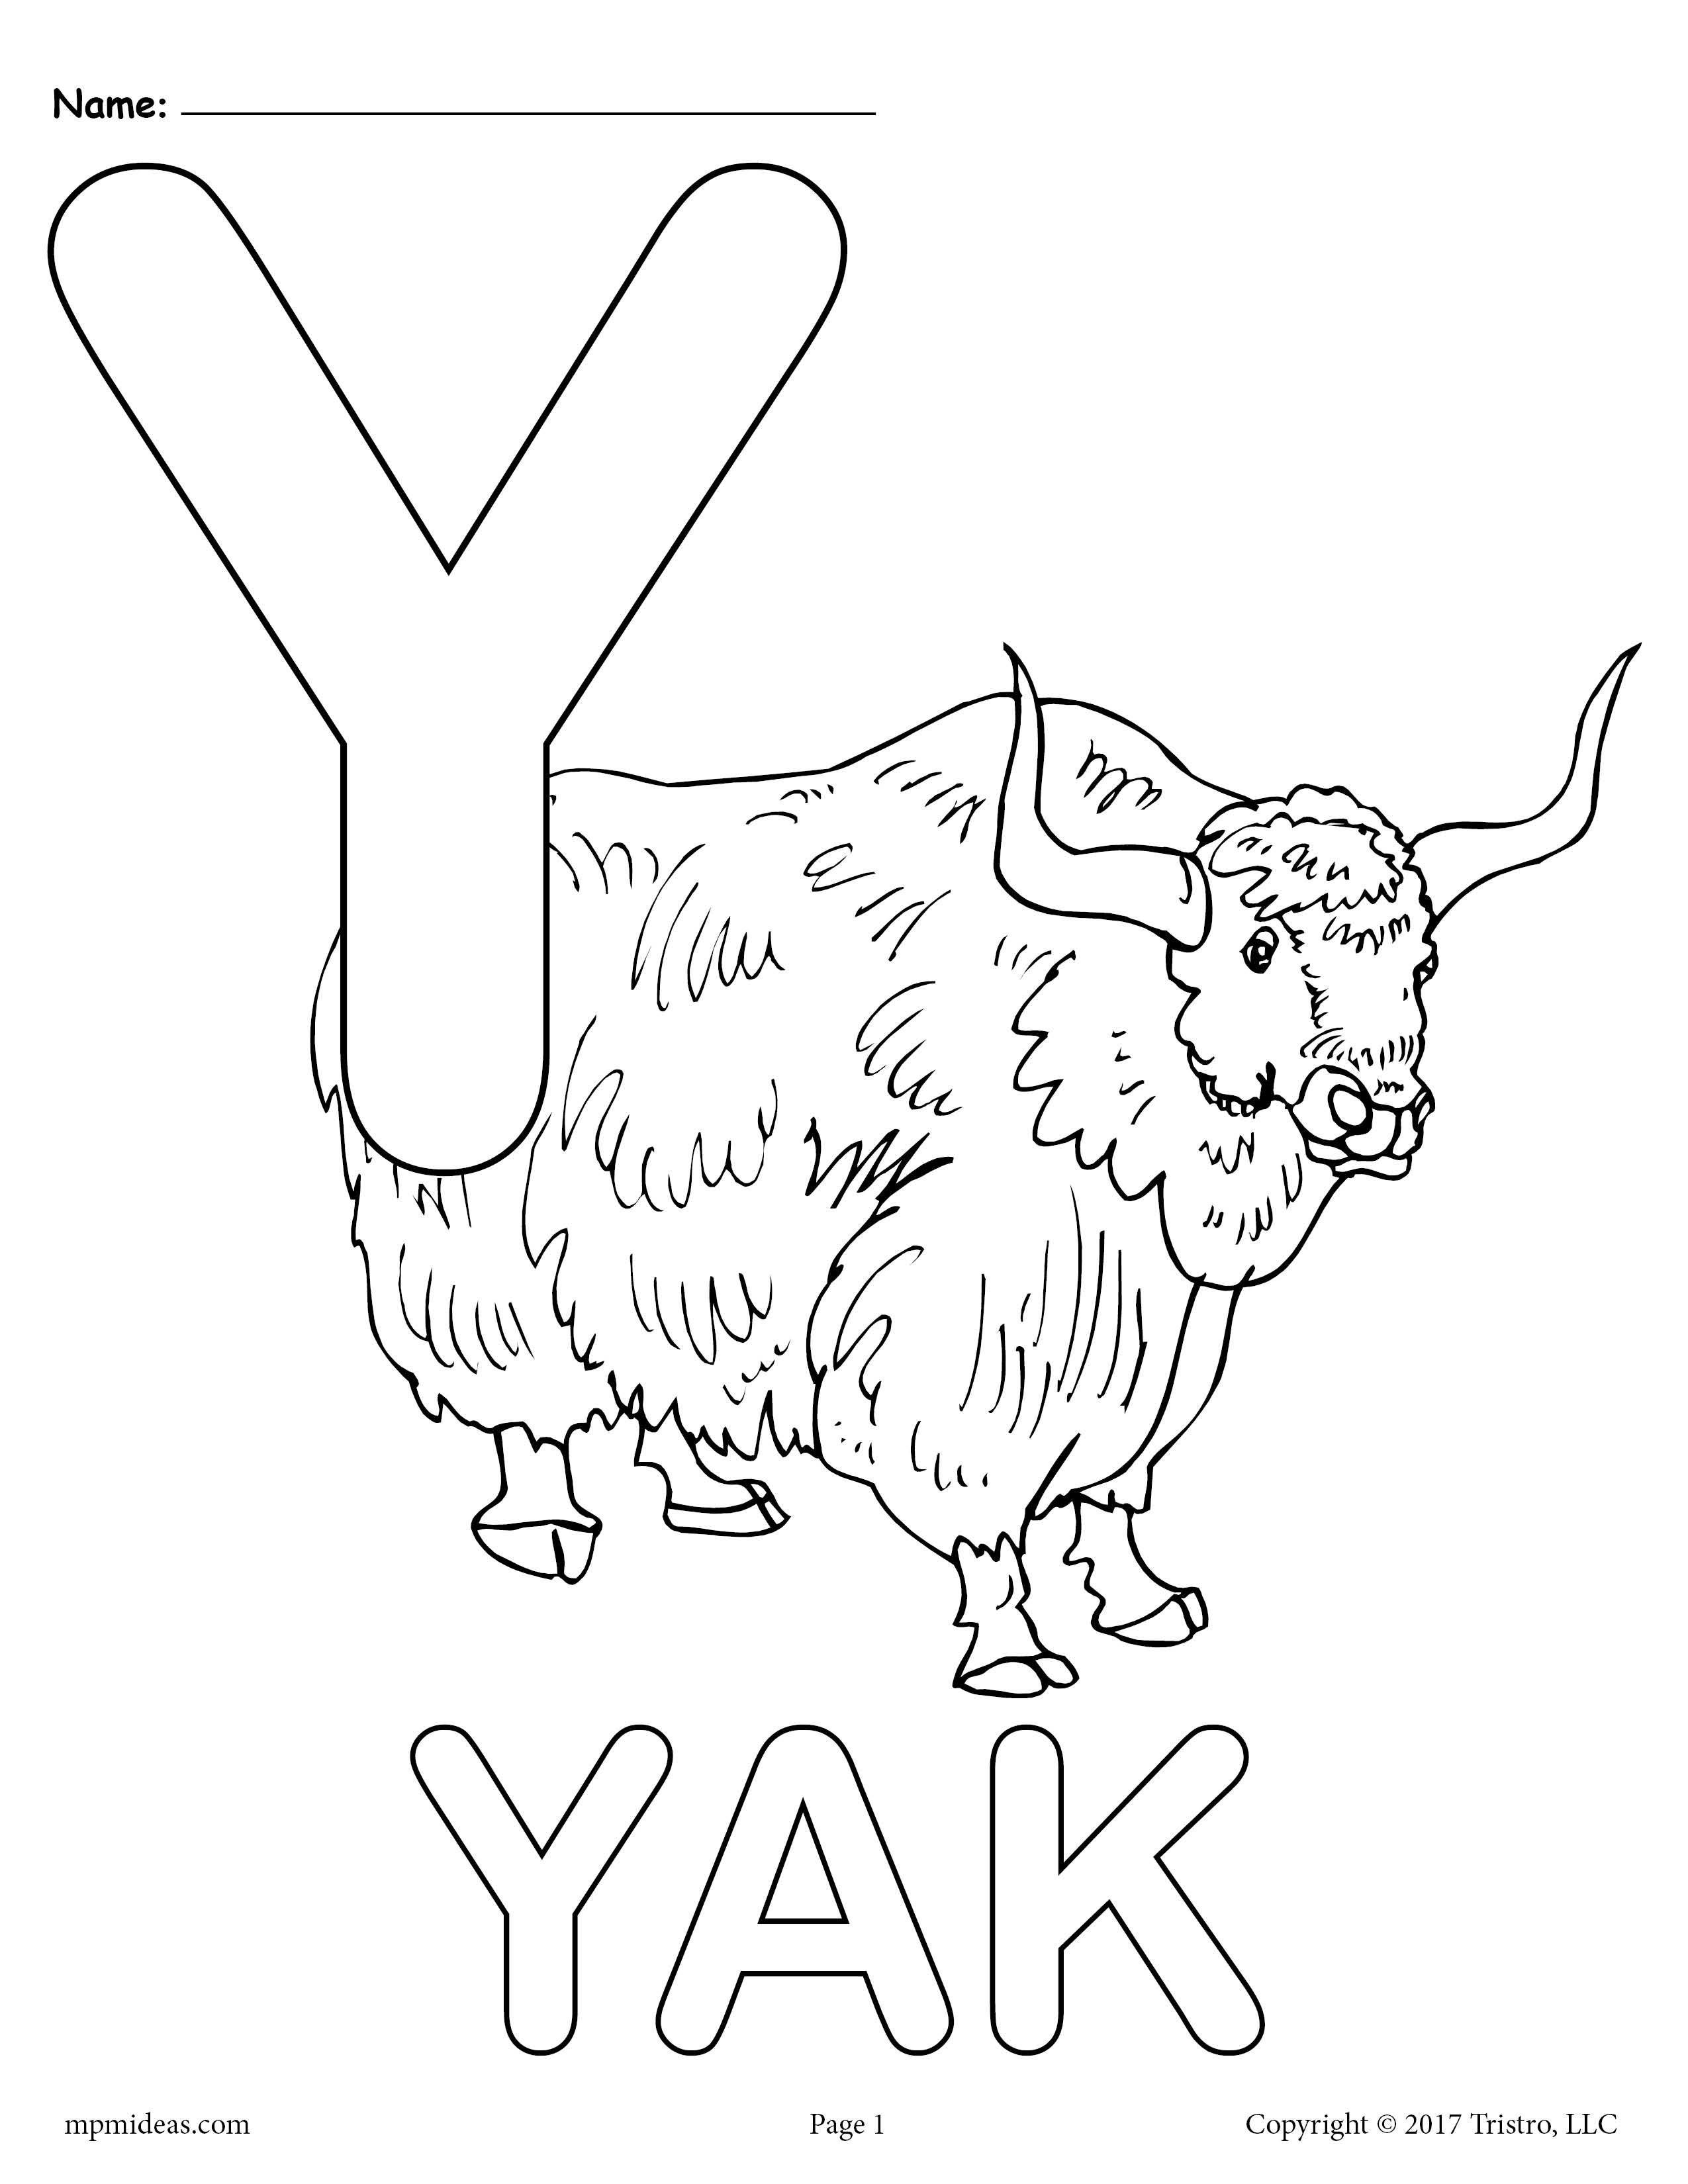 Letter Y Alphabet Coloring Pages 3 Printable Versions Supplyme Alphabet Coloring Pages Y Coloring Pages Alphabet Coloring